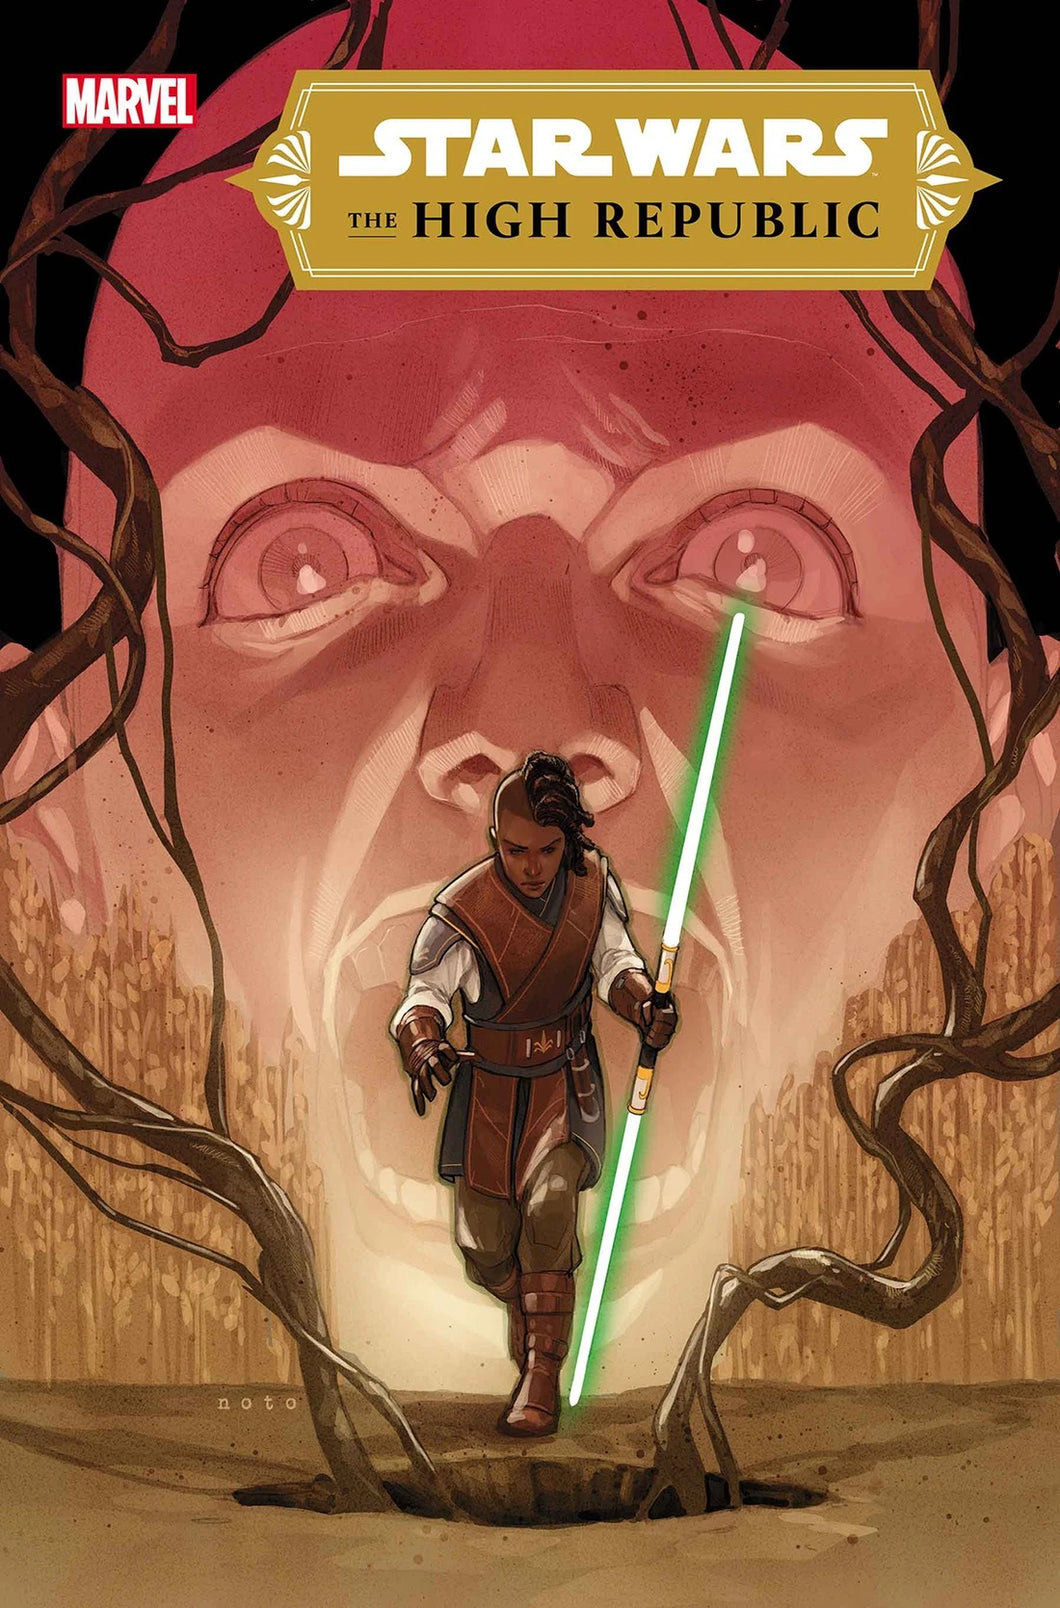 [PRE-ORDER] Marvel Comics - Star Wars The High Republic #3